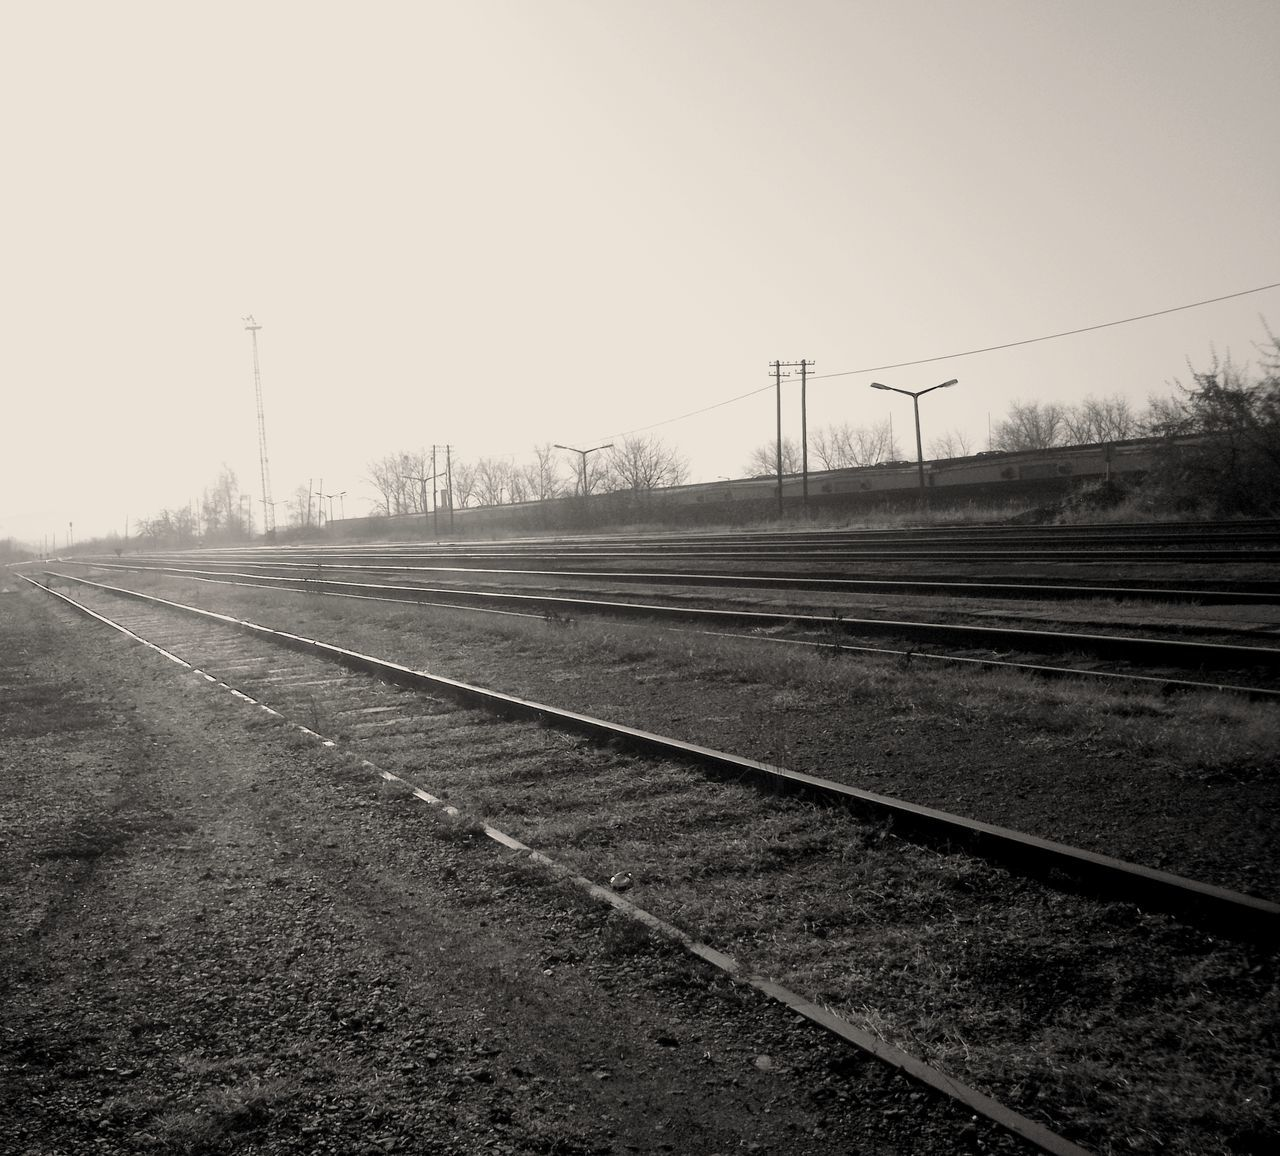 rail transportation, railroad track, transportation, no people, clear sky, railway track, outdoors, day, nature, sky